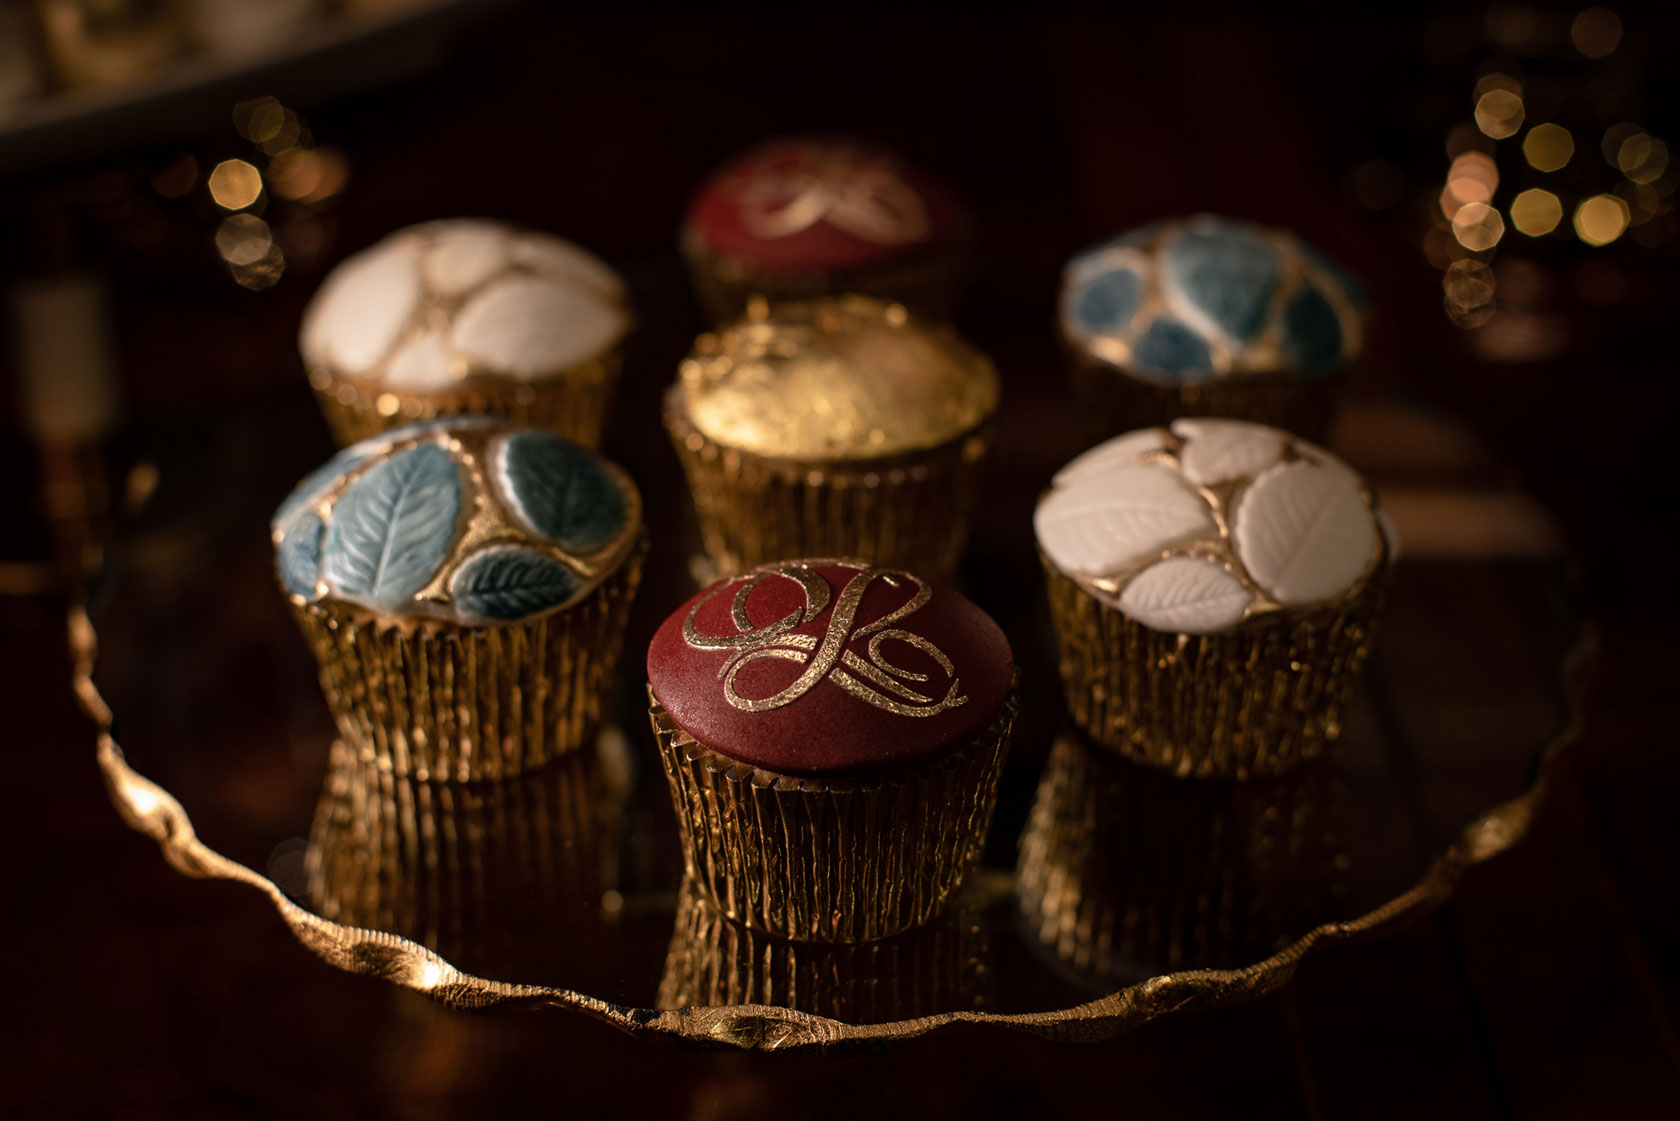 Red, blue, white and gold cupcakes By GC Couture with a delicately handpainted logo on the cupcake at the forefront